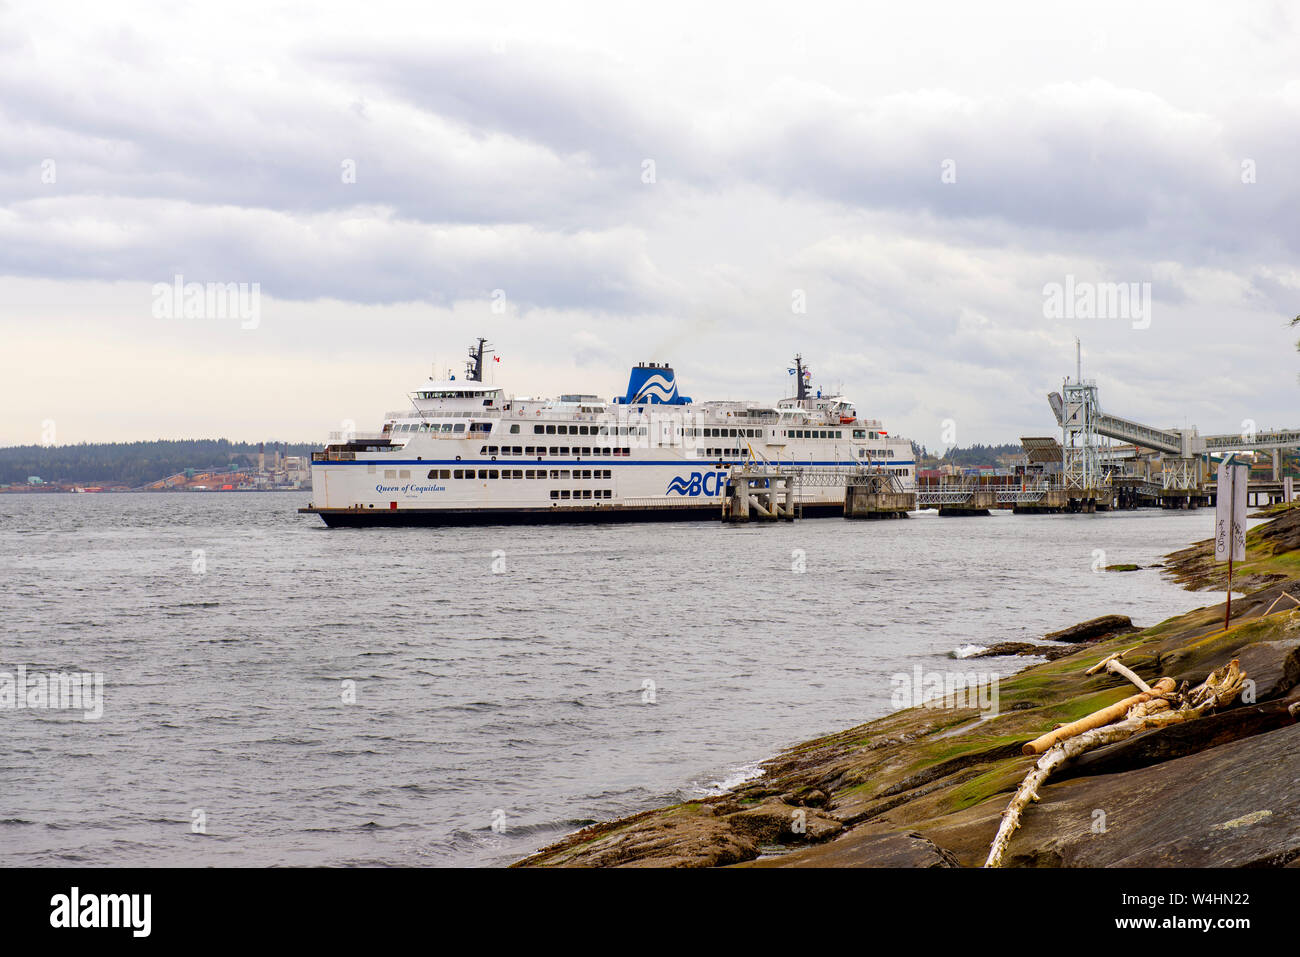 NANAIMO, BC - APRIL 13, 2018: A BC ferry docked at Departure Bay in Nanaimo. BC ferries provides all major ferry services for coastal and island commu Stock Photo